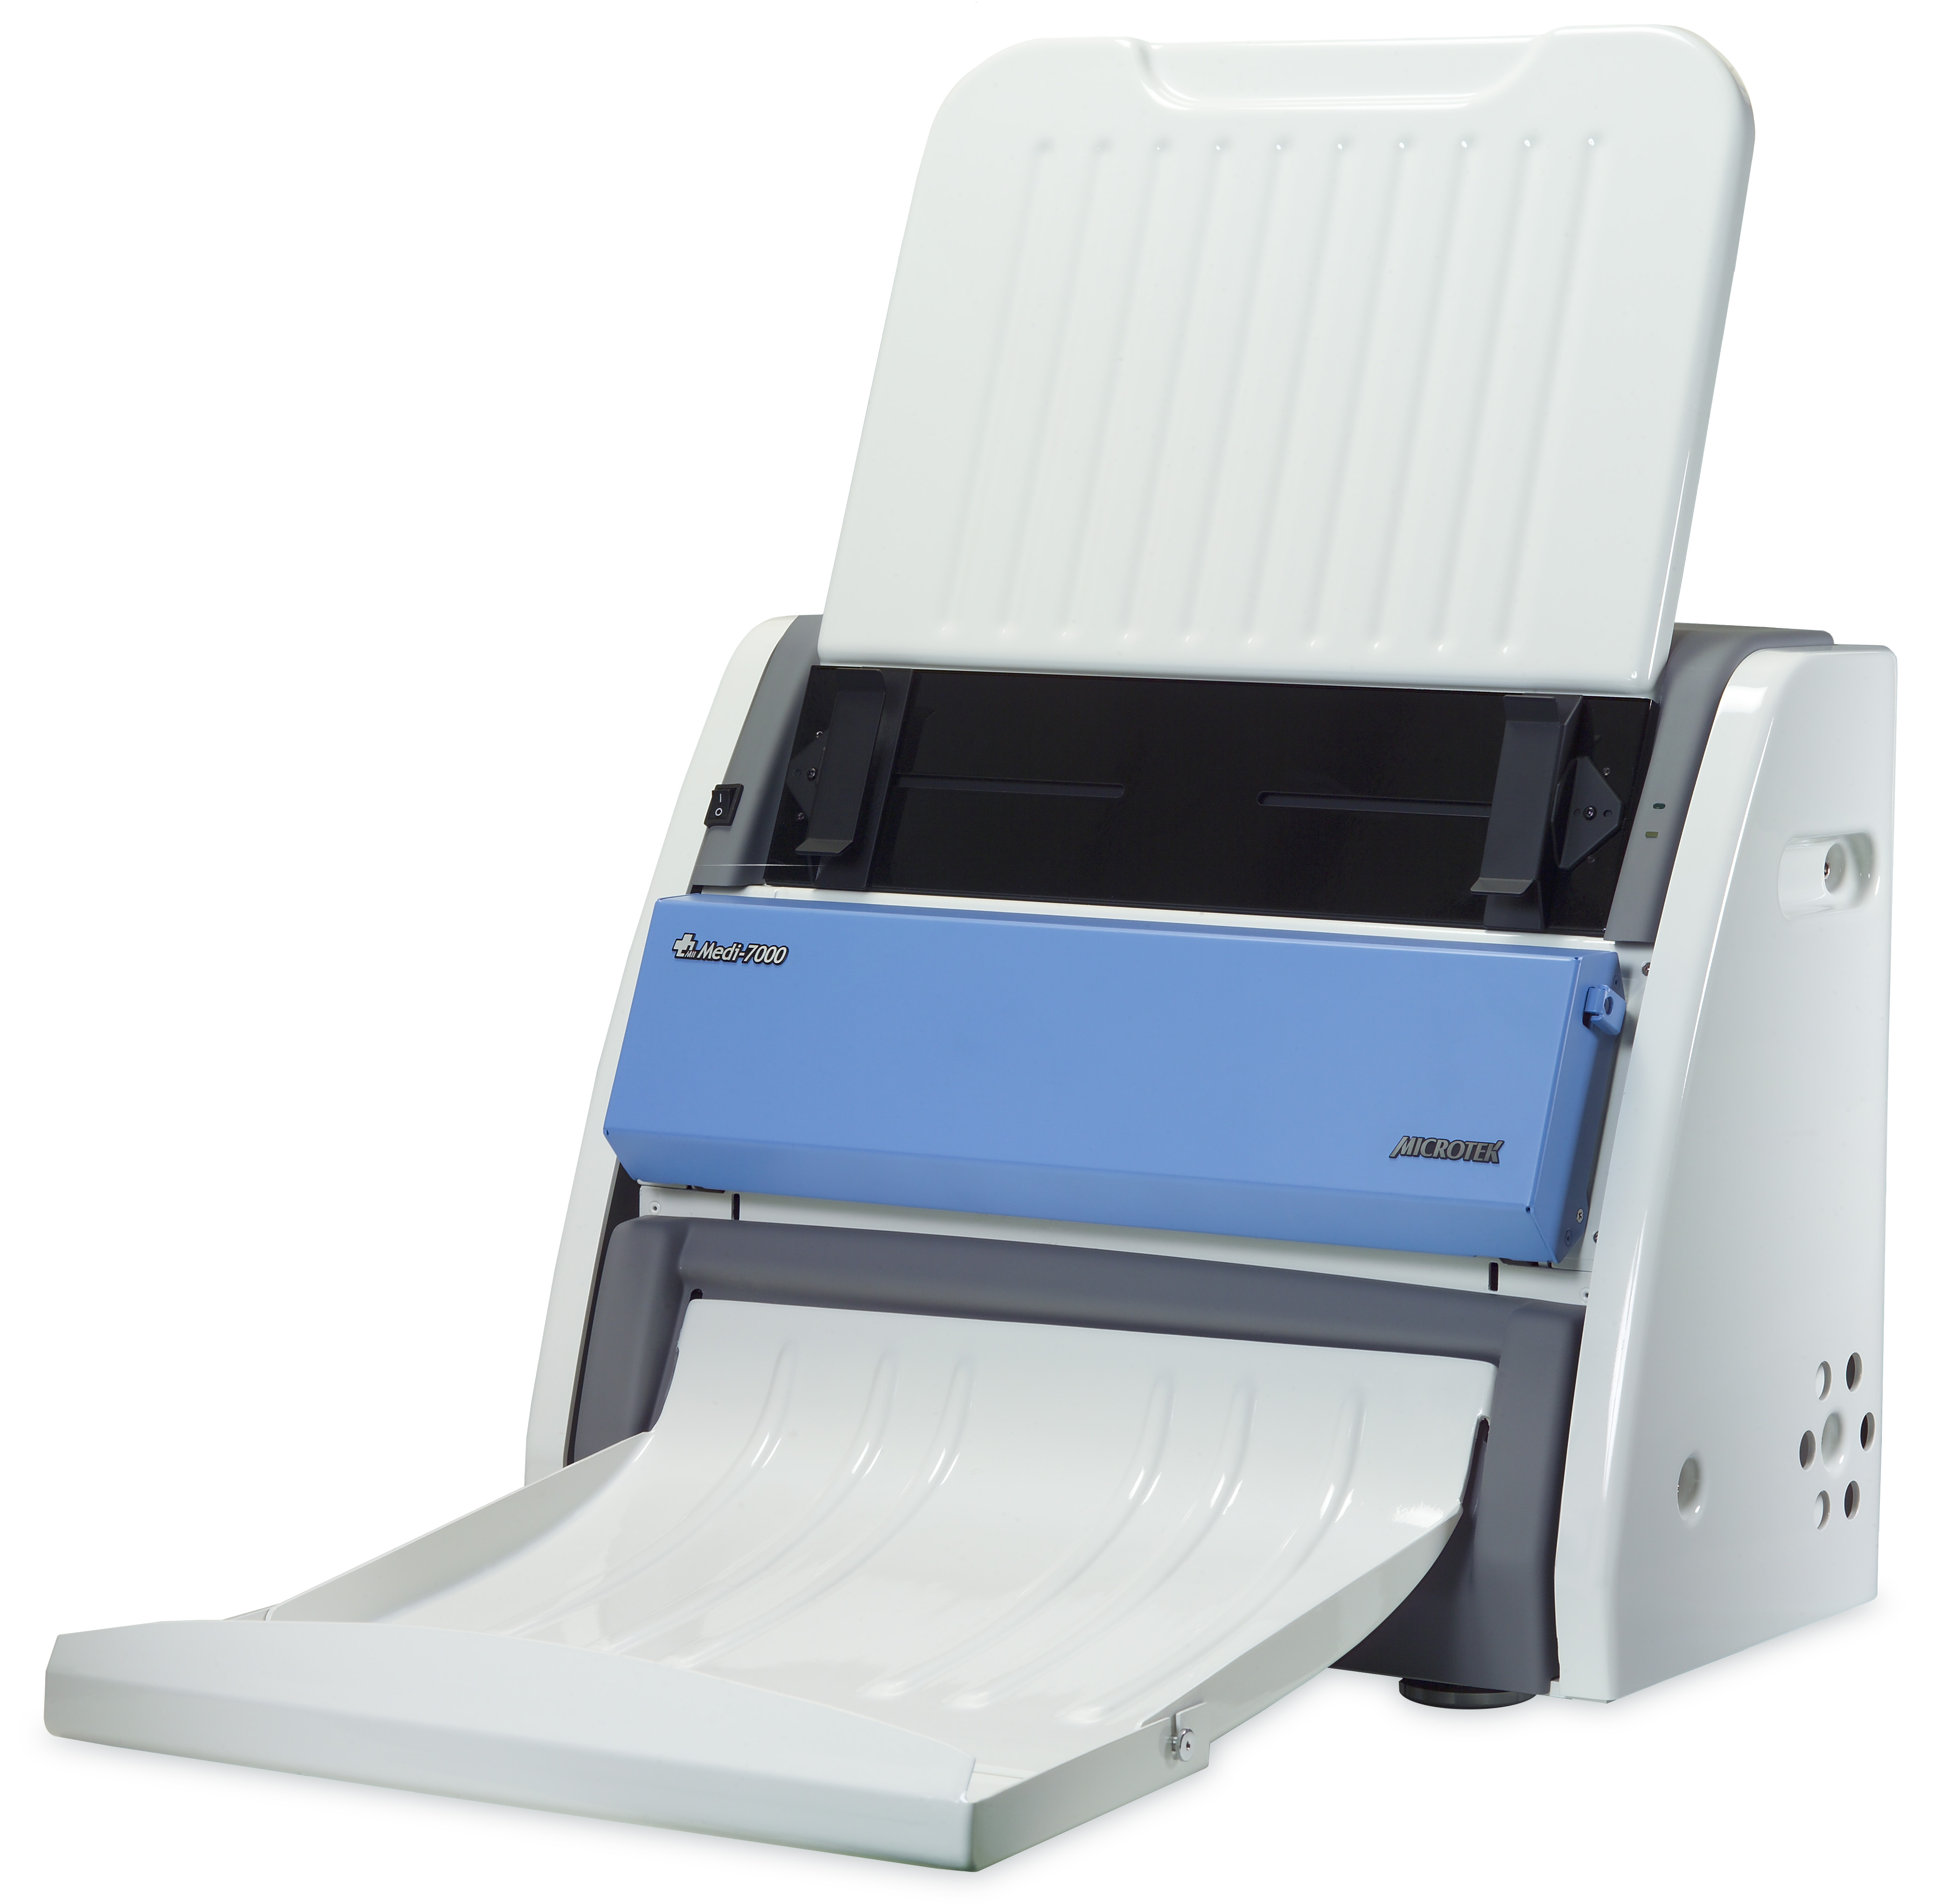 Microtek, Medi-7000, 7, Secs, per, page, X-Ray, Digitizer,